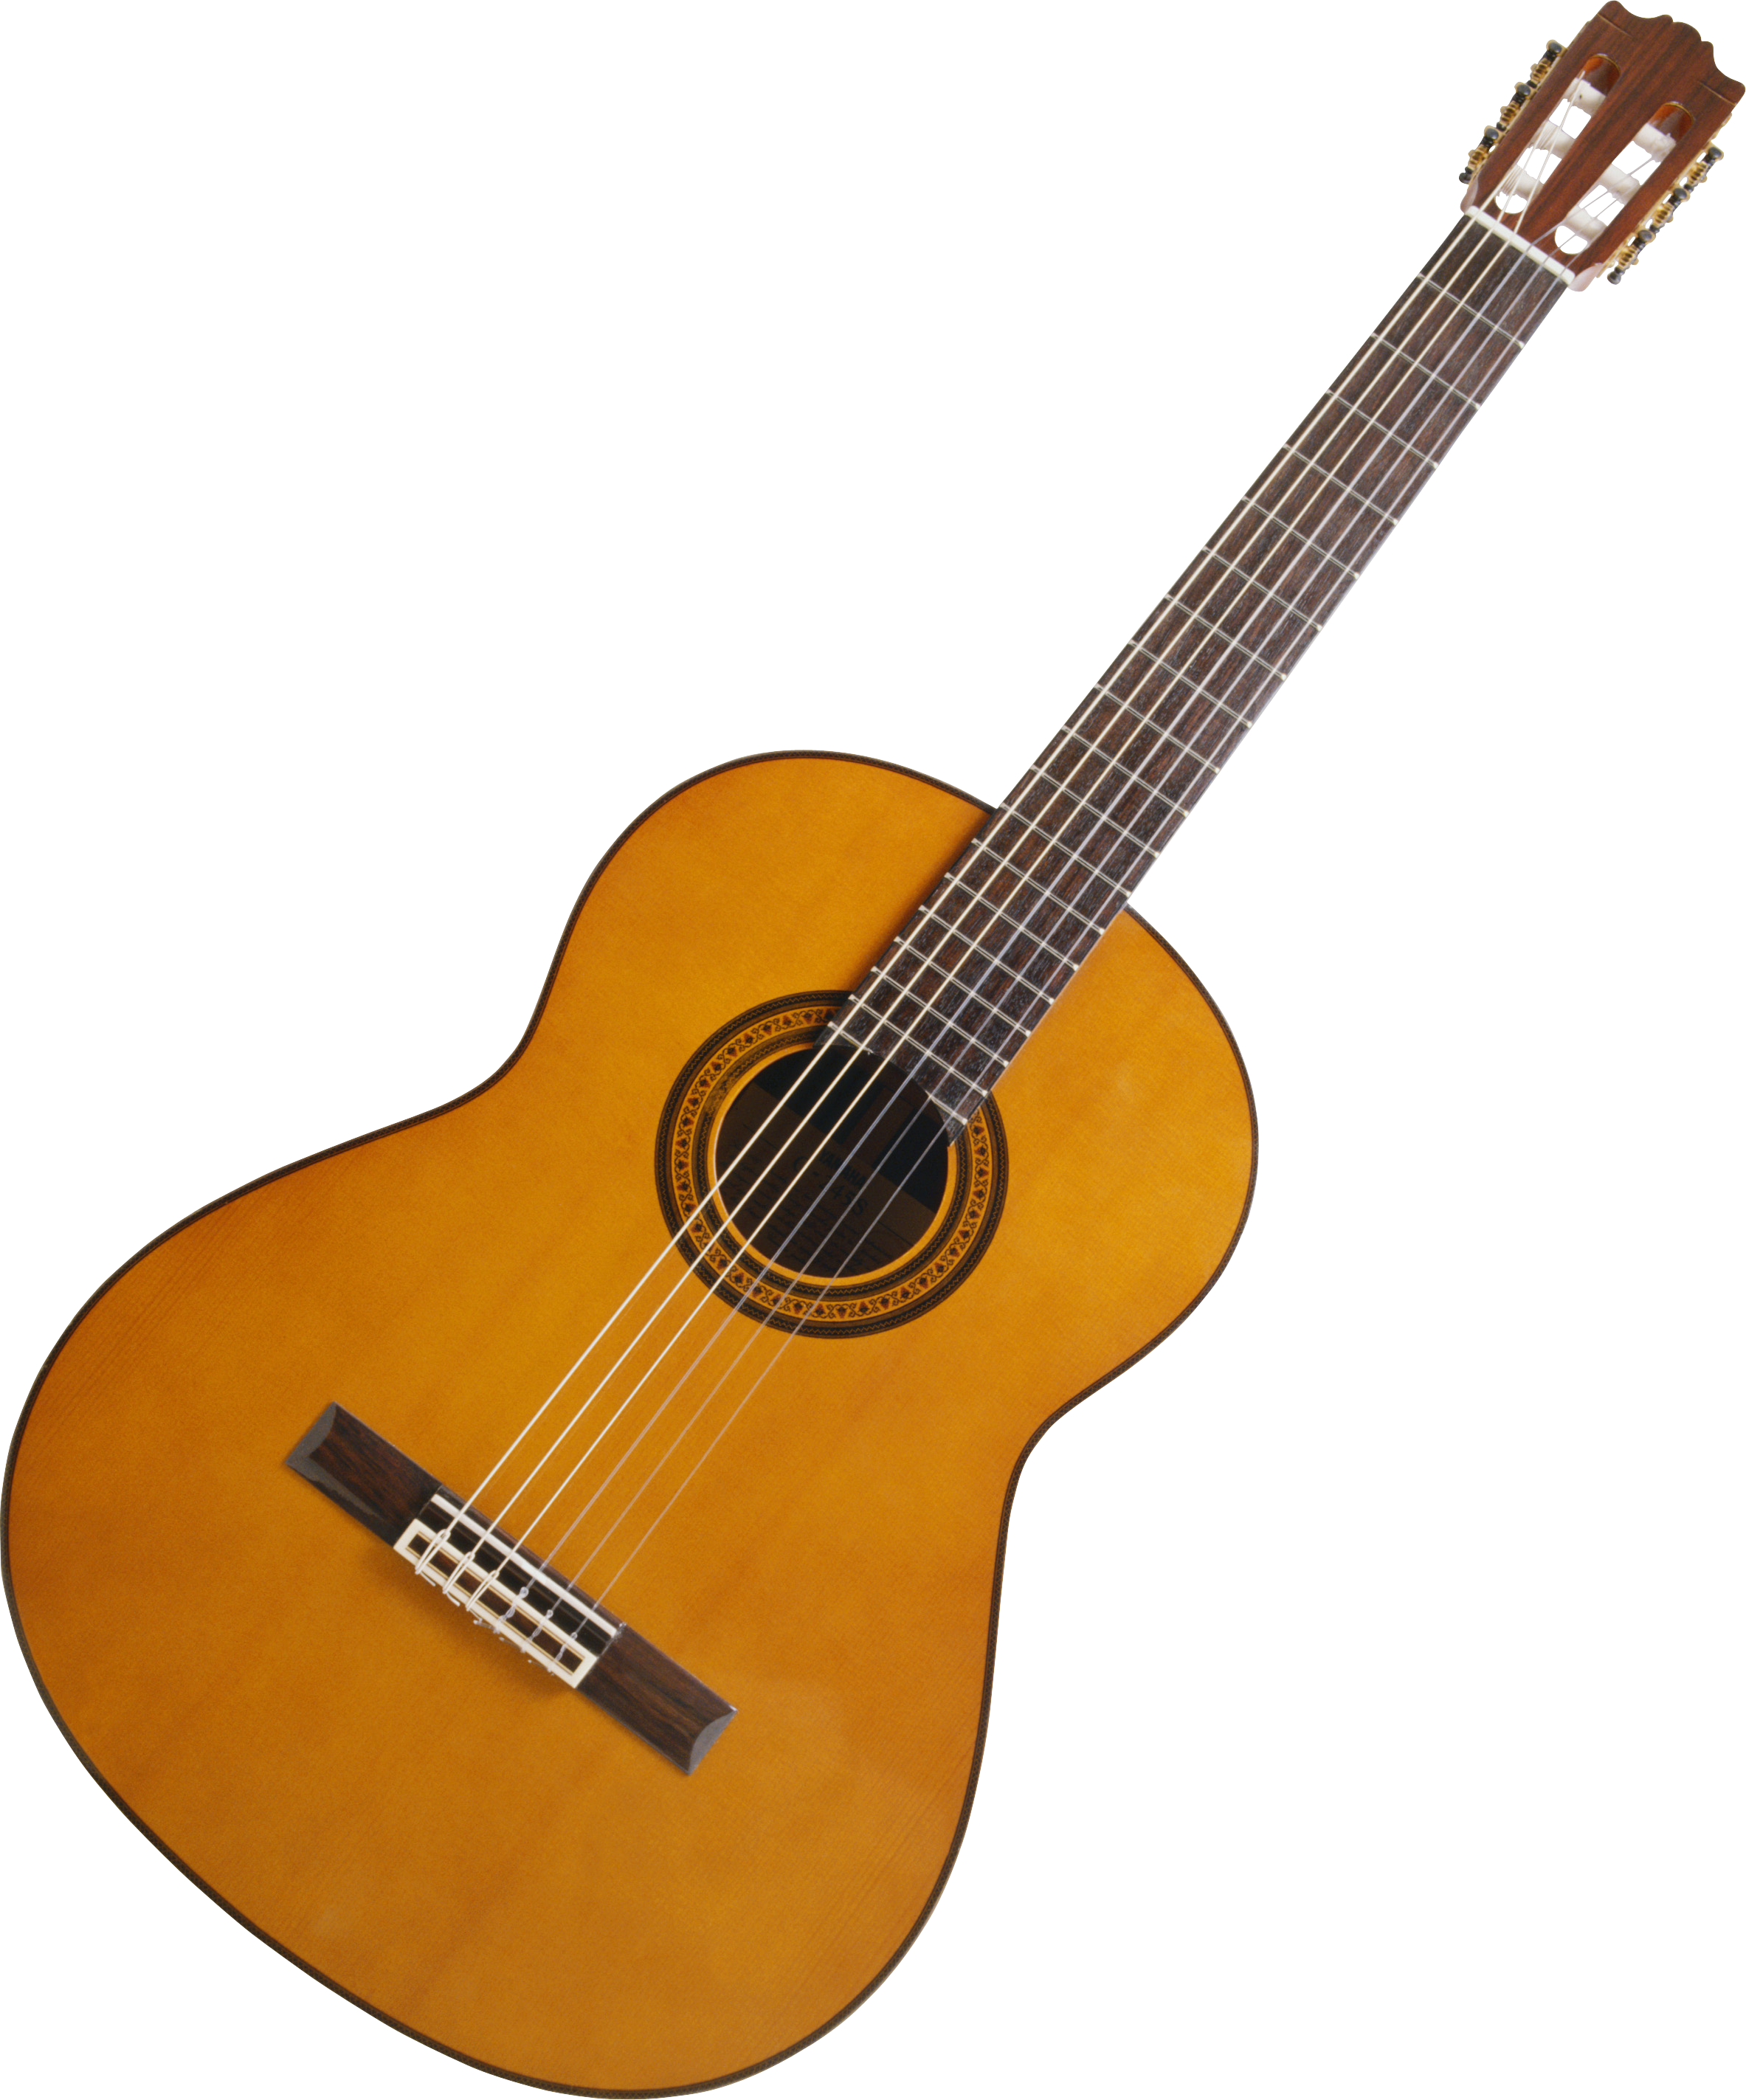 9 Country Guitar Png For Free Download On Ya Webdesign